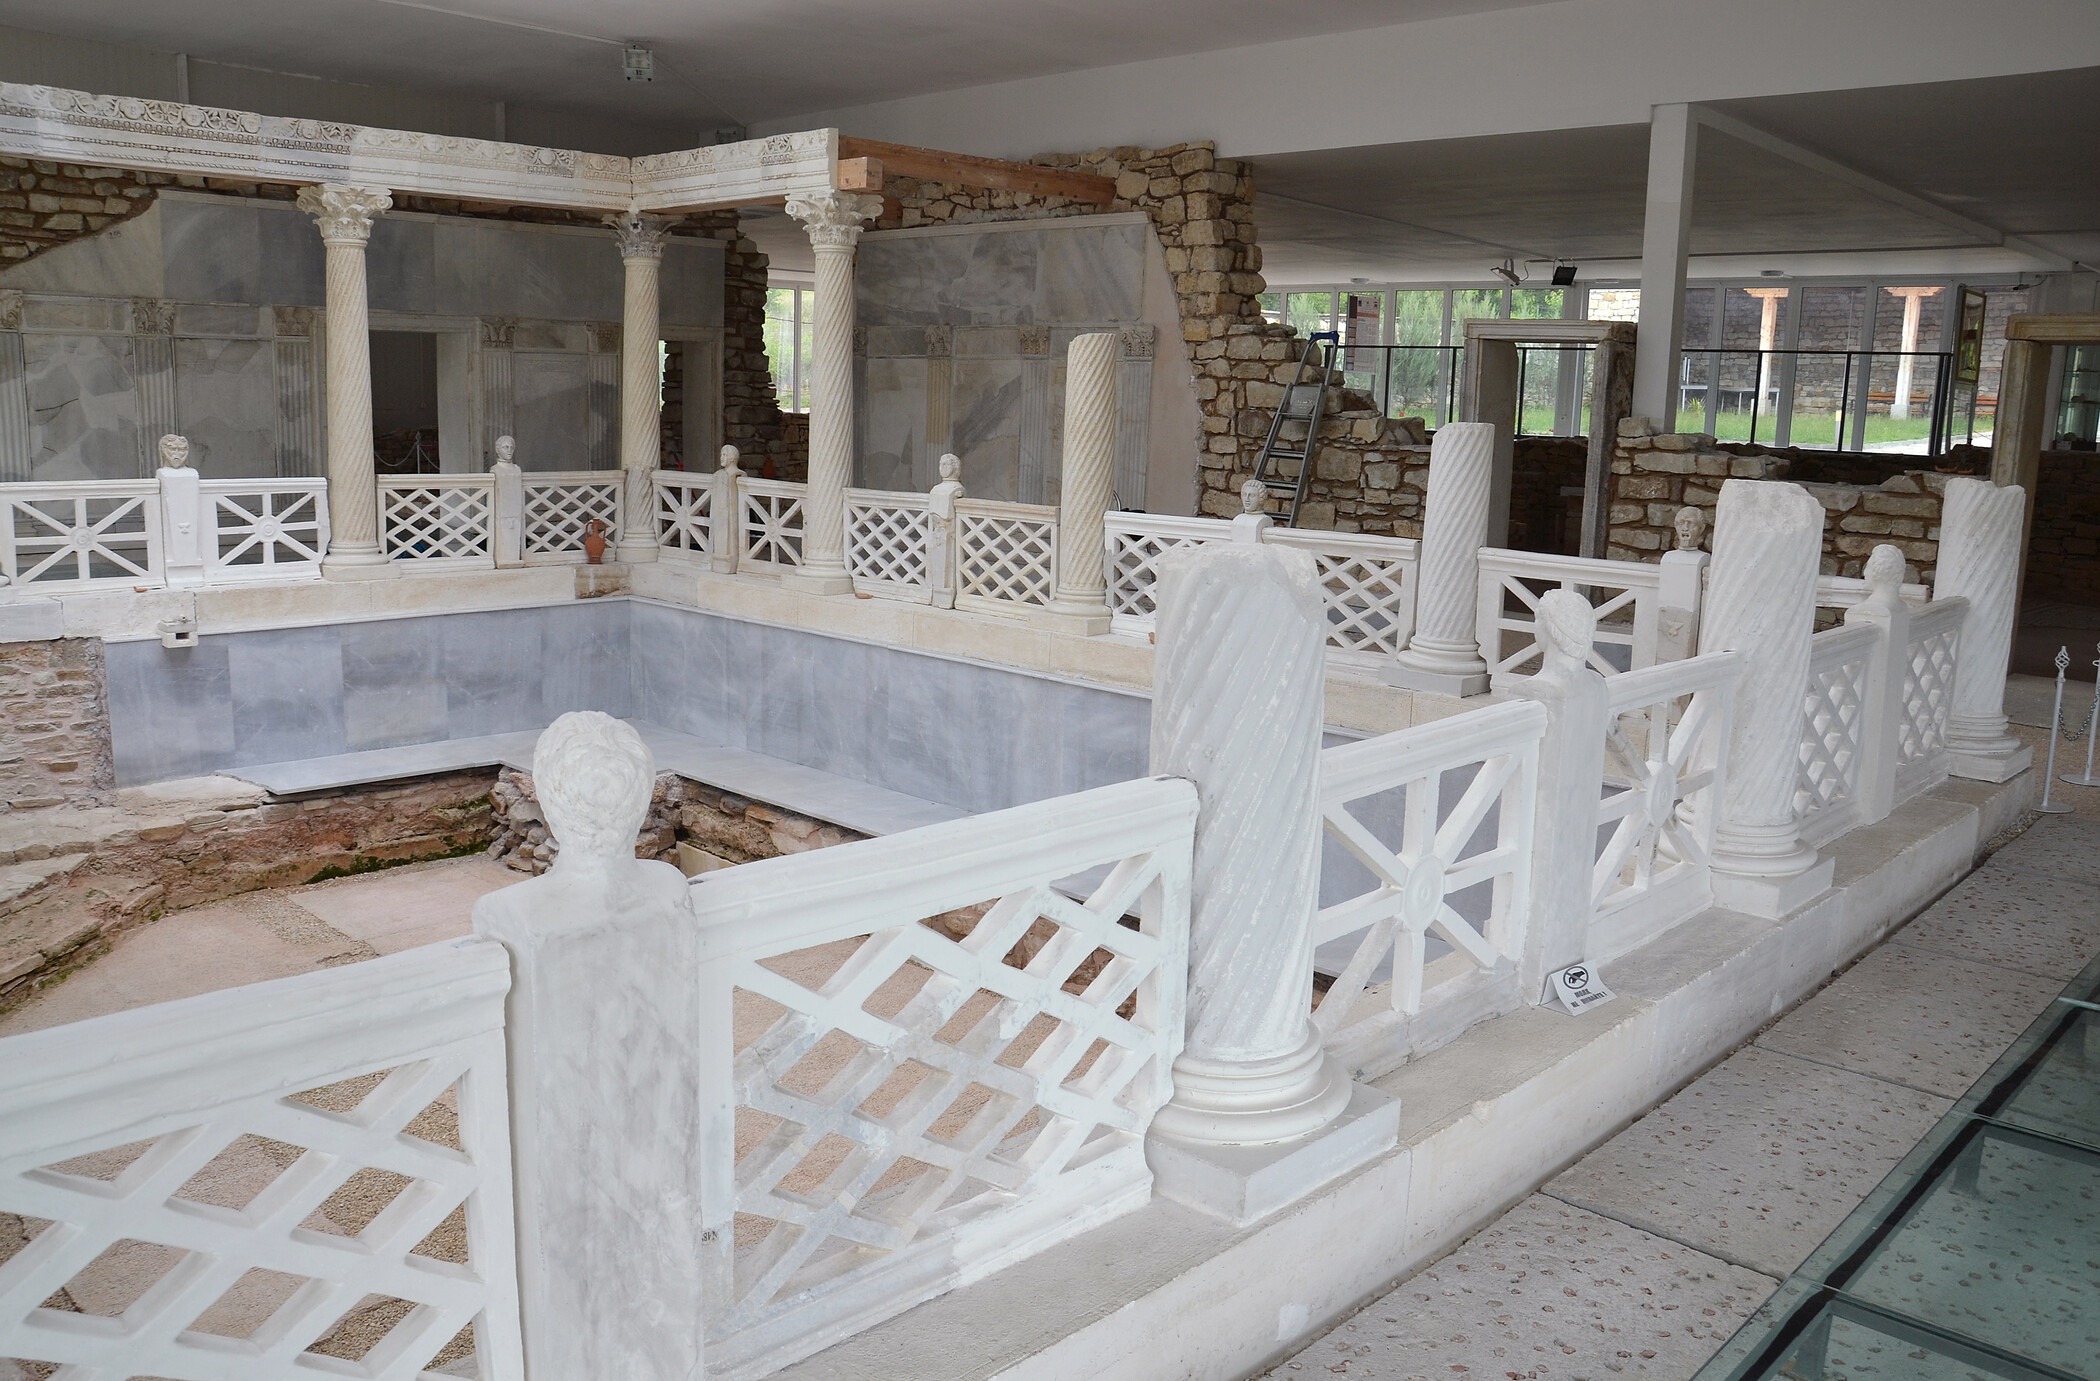 The peristyle courtyard of the villa of Armira (photo: OeAW-OeAI/Vasiliki Anevlavi)